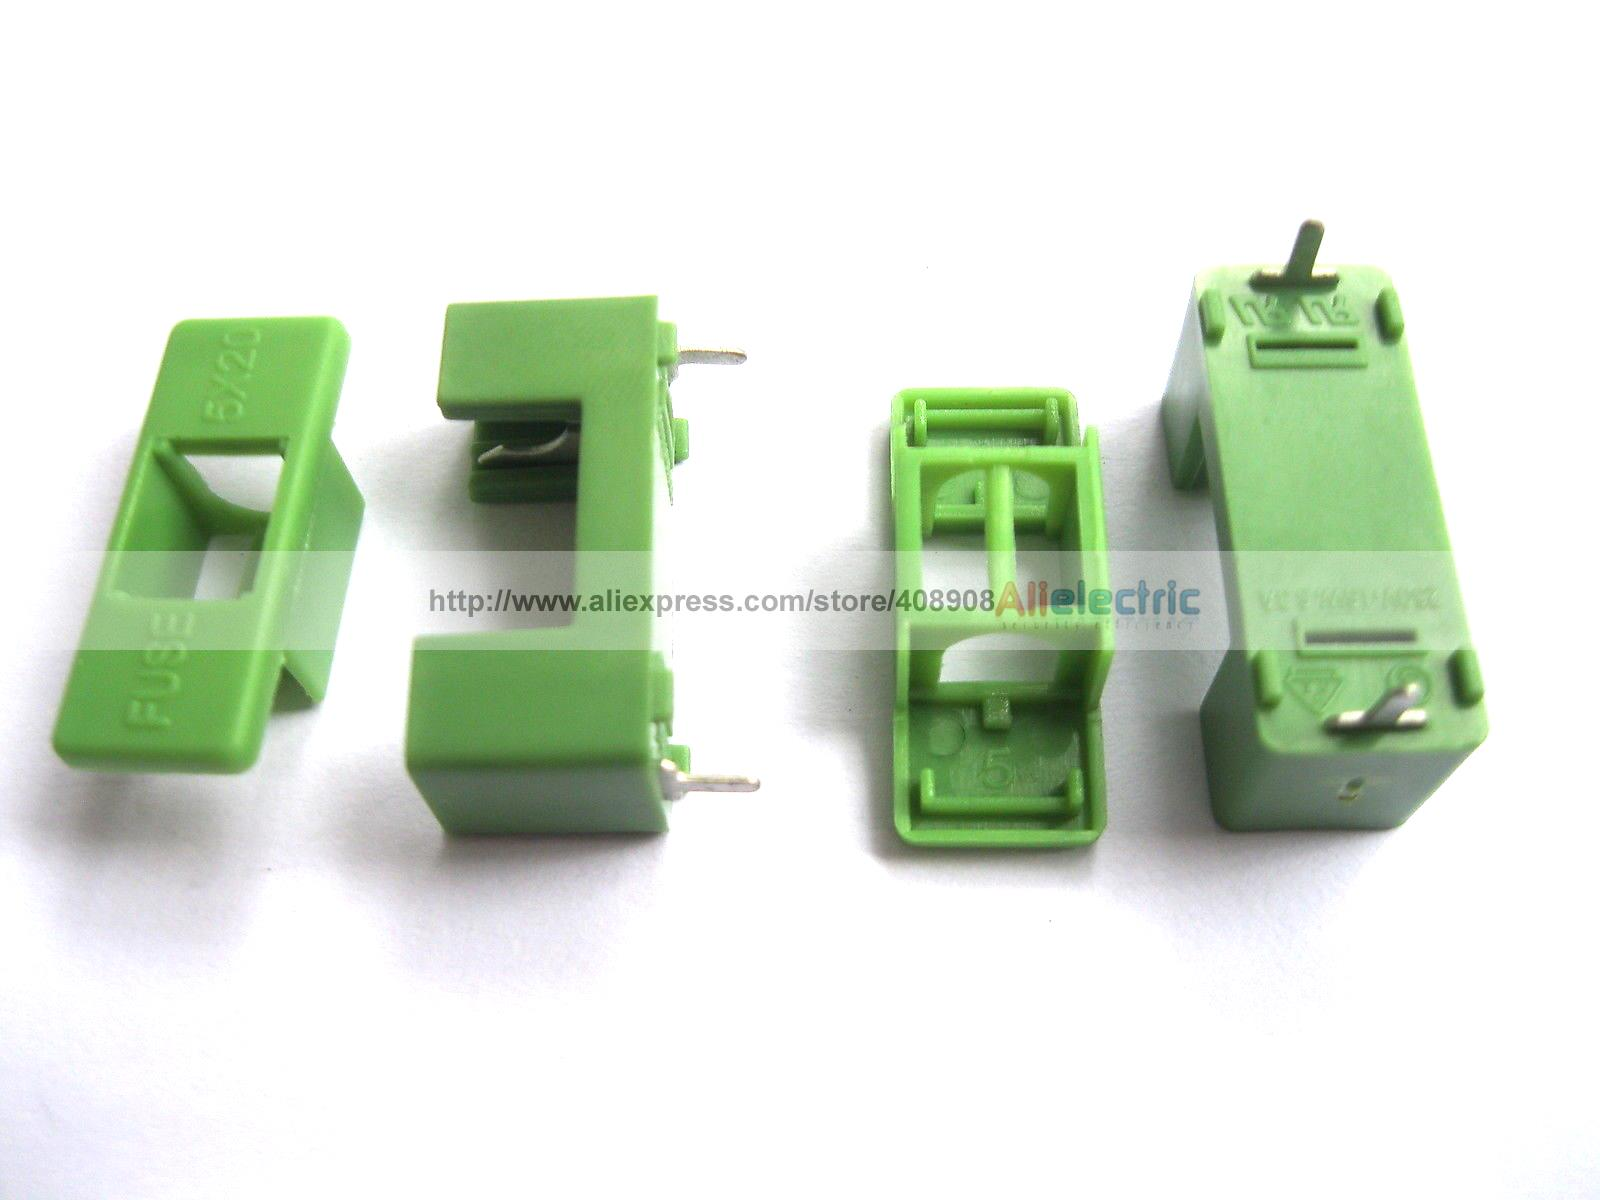 100 Pcs PTF 7 DIP Fuse Holder 6 3A 250V Used for 5x20 Green Color mip390 dip 7